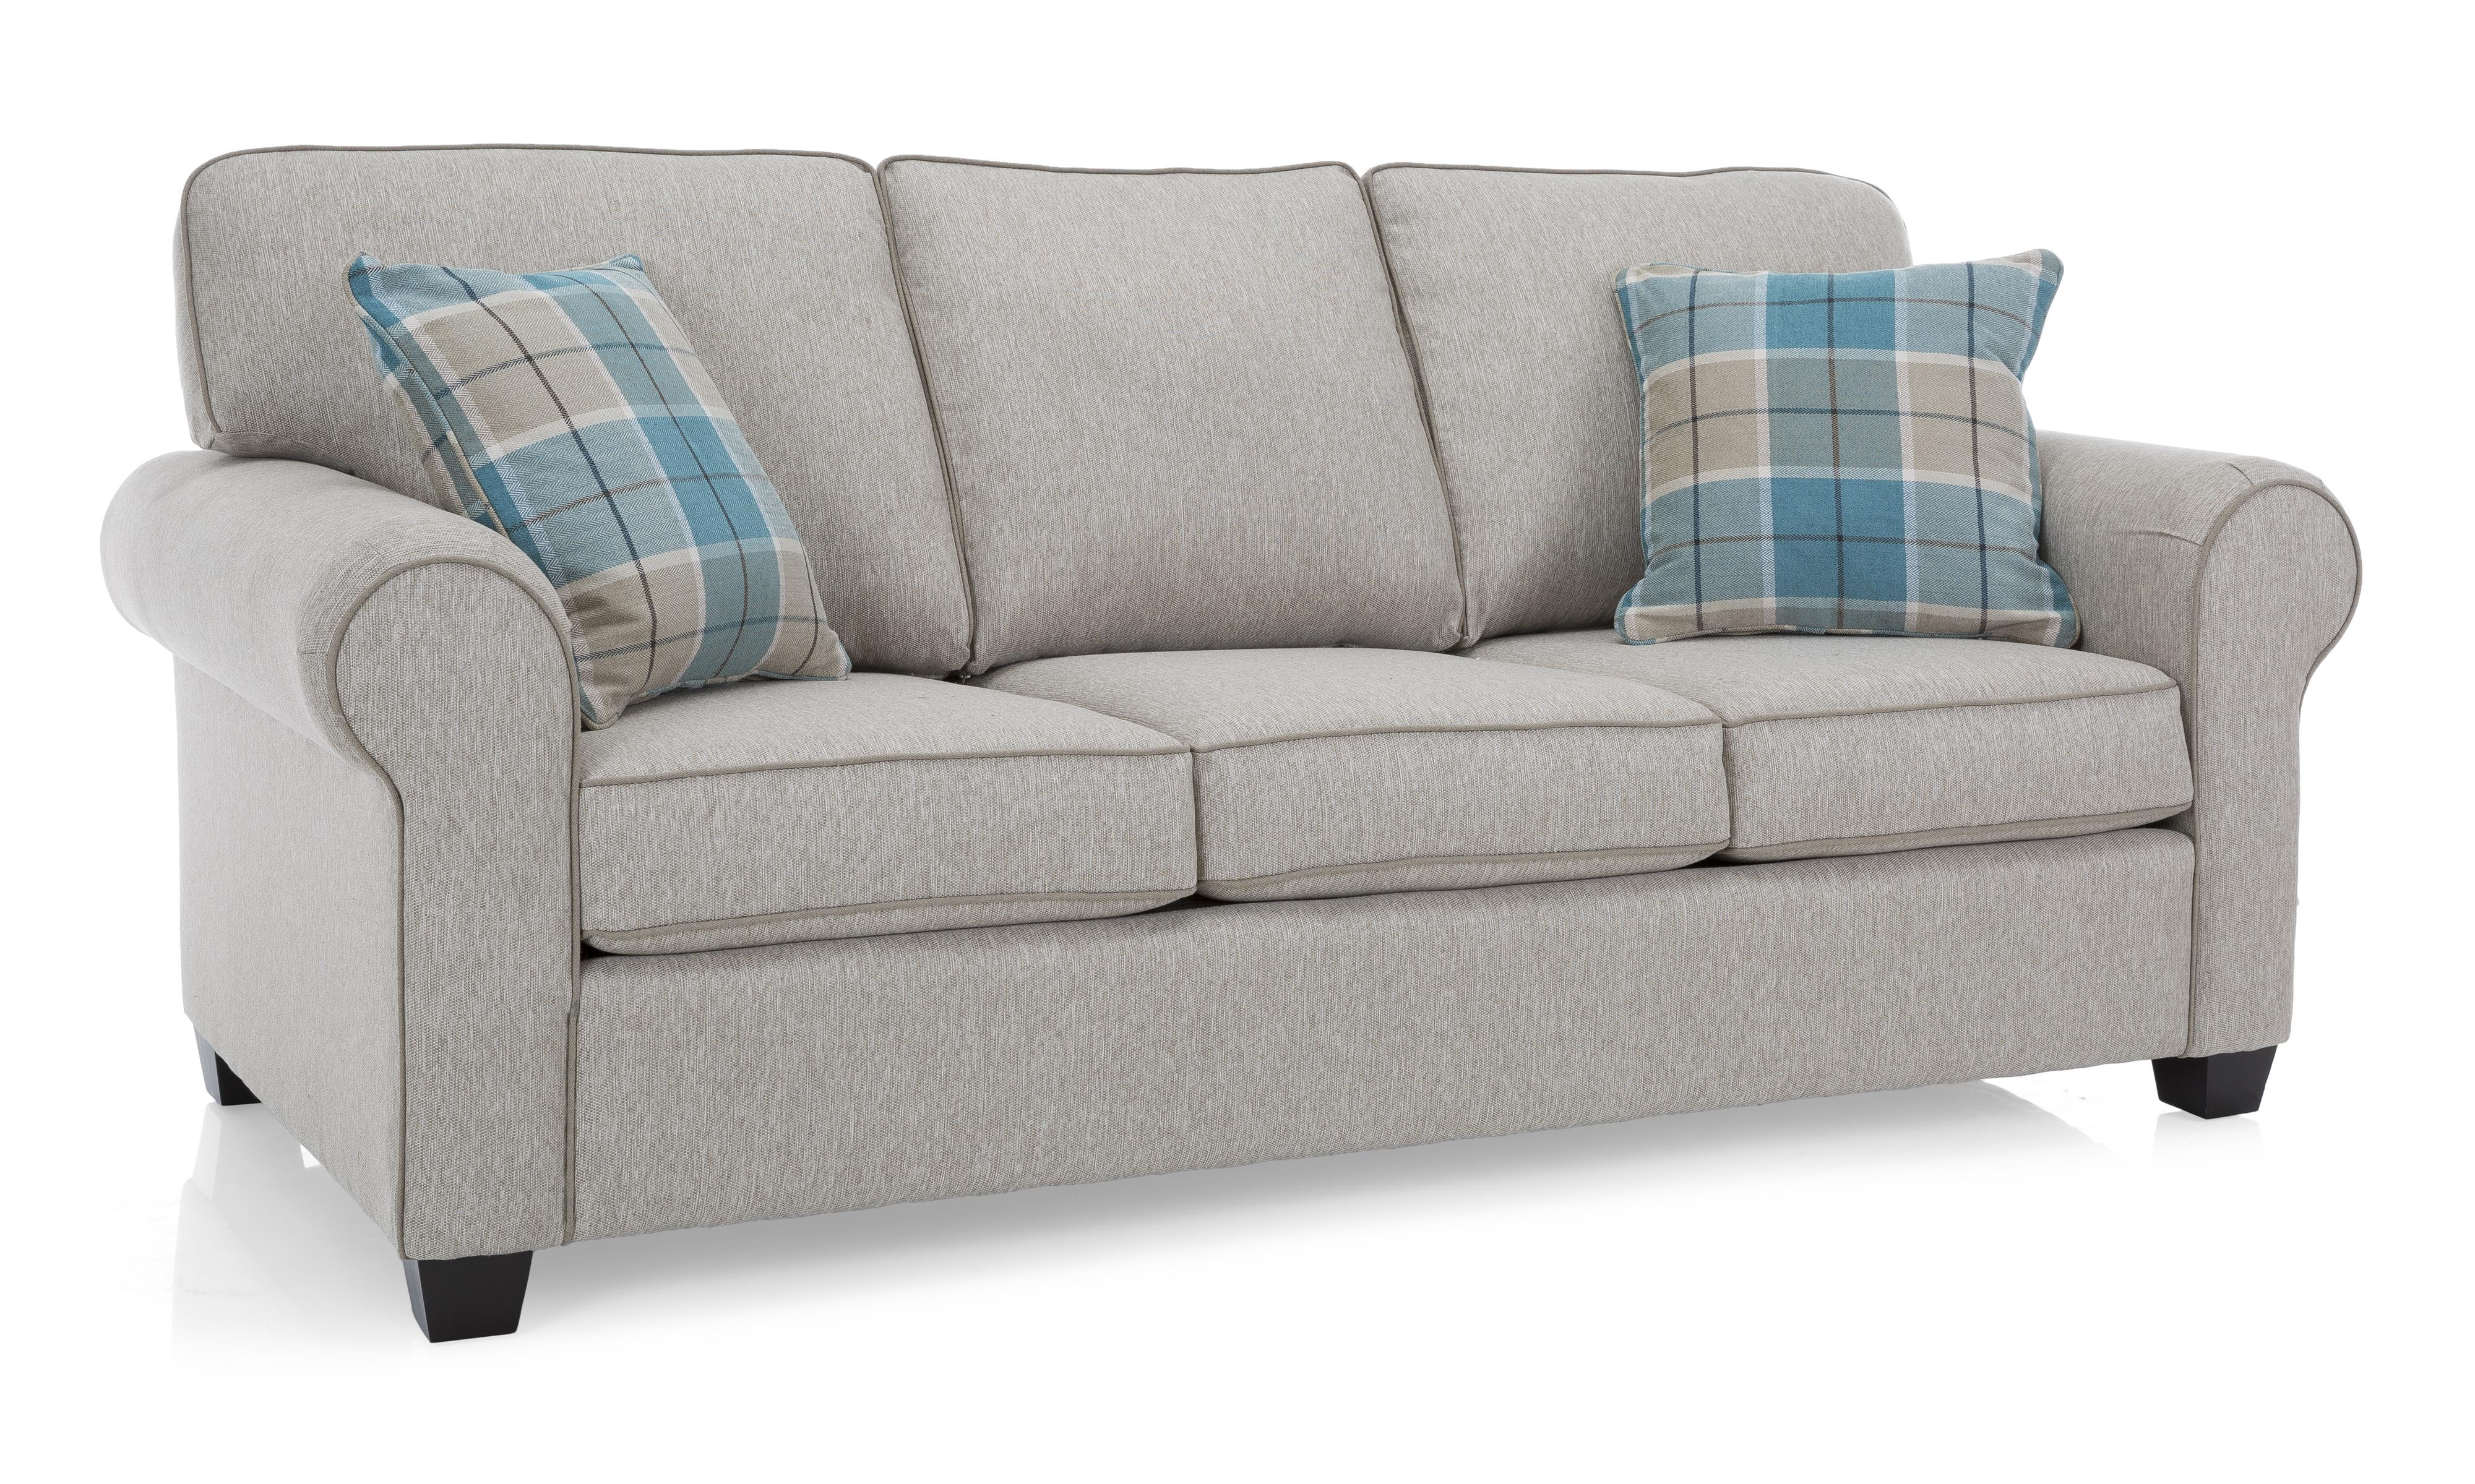 2179 Sofa by Decor-Rest at Stoney Creek Furniture